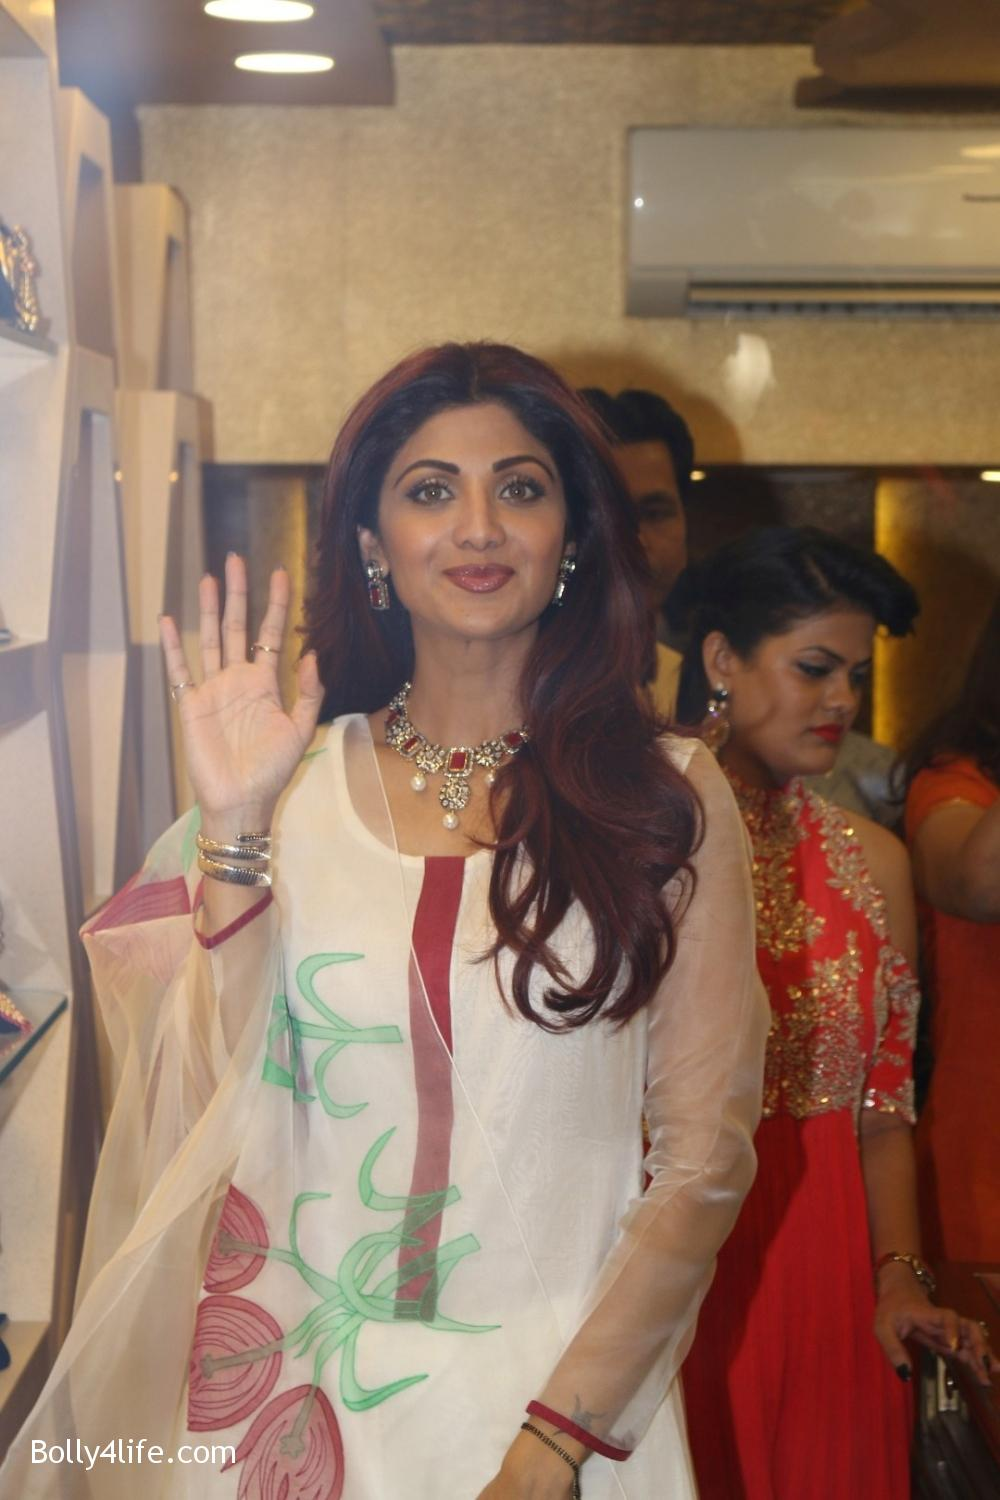 Shilpa-Shetty-inaugurates-jewellery-showroom-of-Varti-Jewells-7.jpg